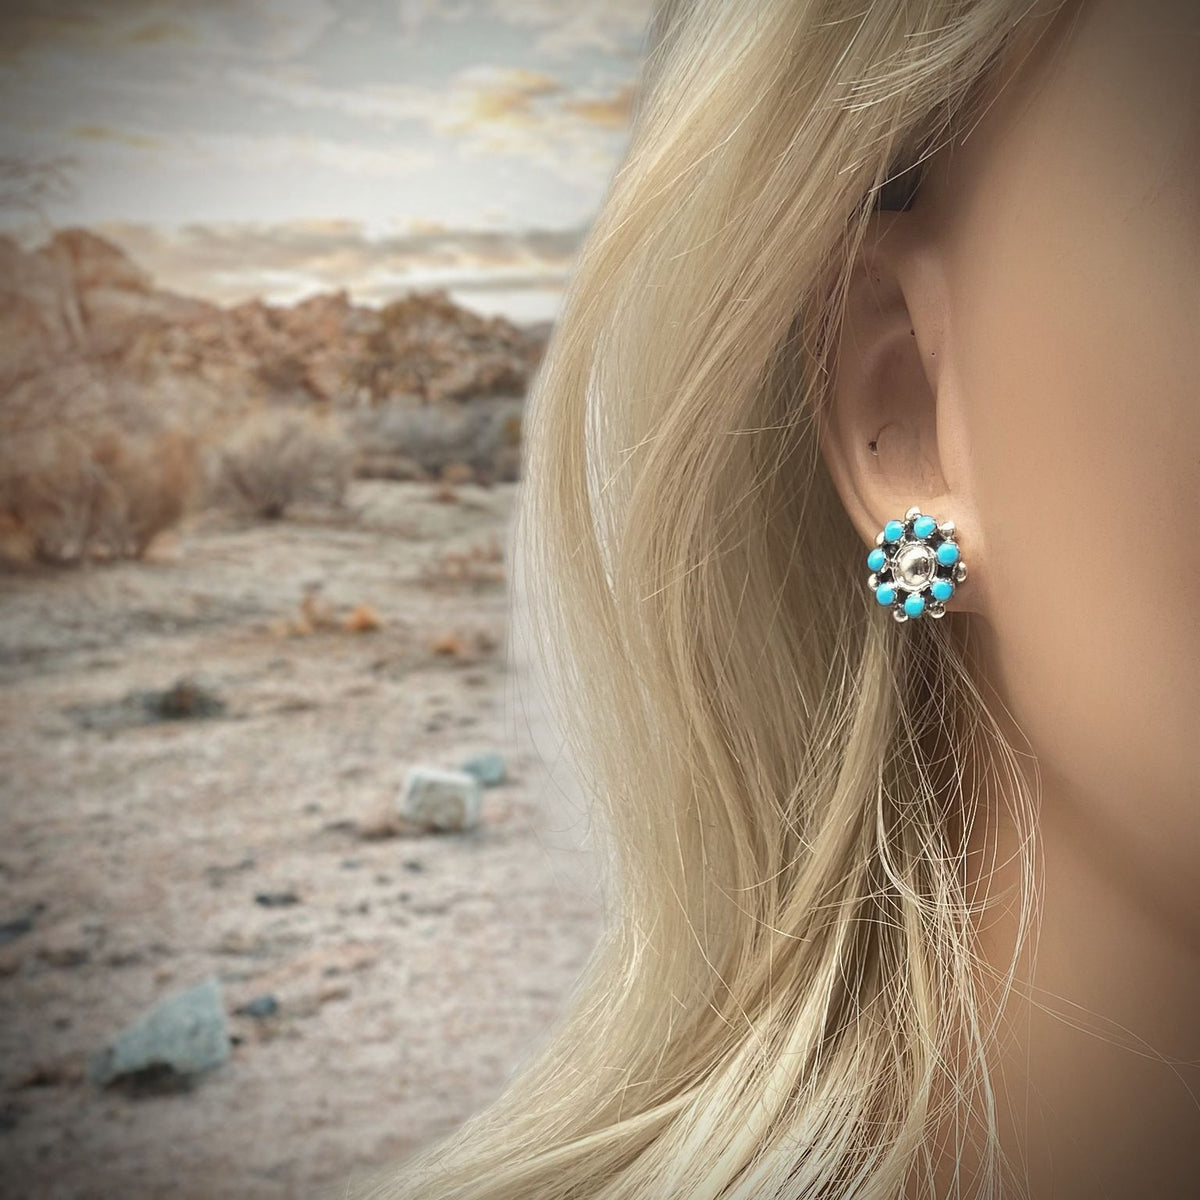 Genuine Sleeping Beauty Turquoise Cluster Stud Earrings in 925 Sterling Silver, Authentic Native American Handmade, Nickle Free